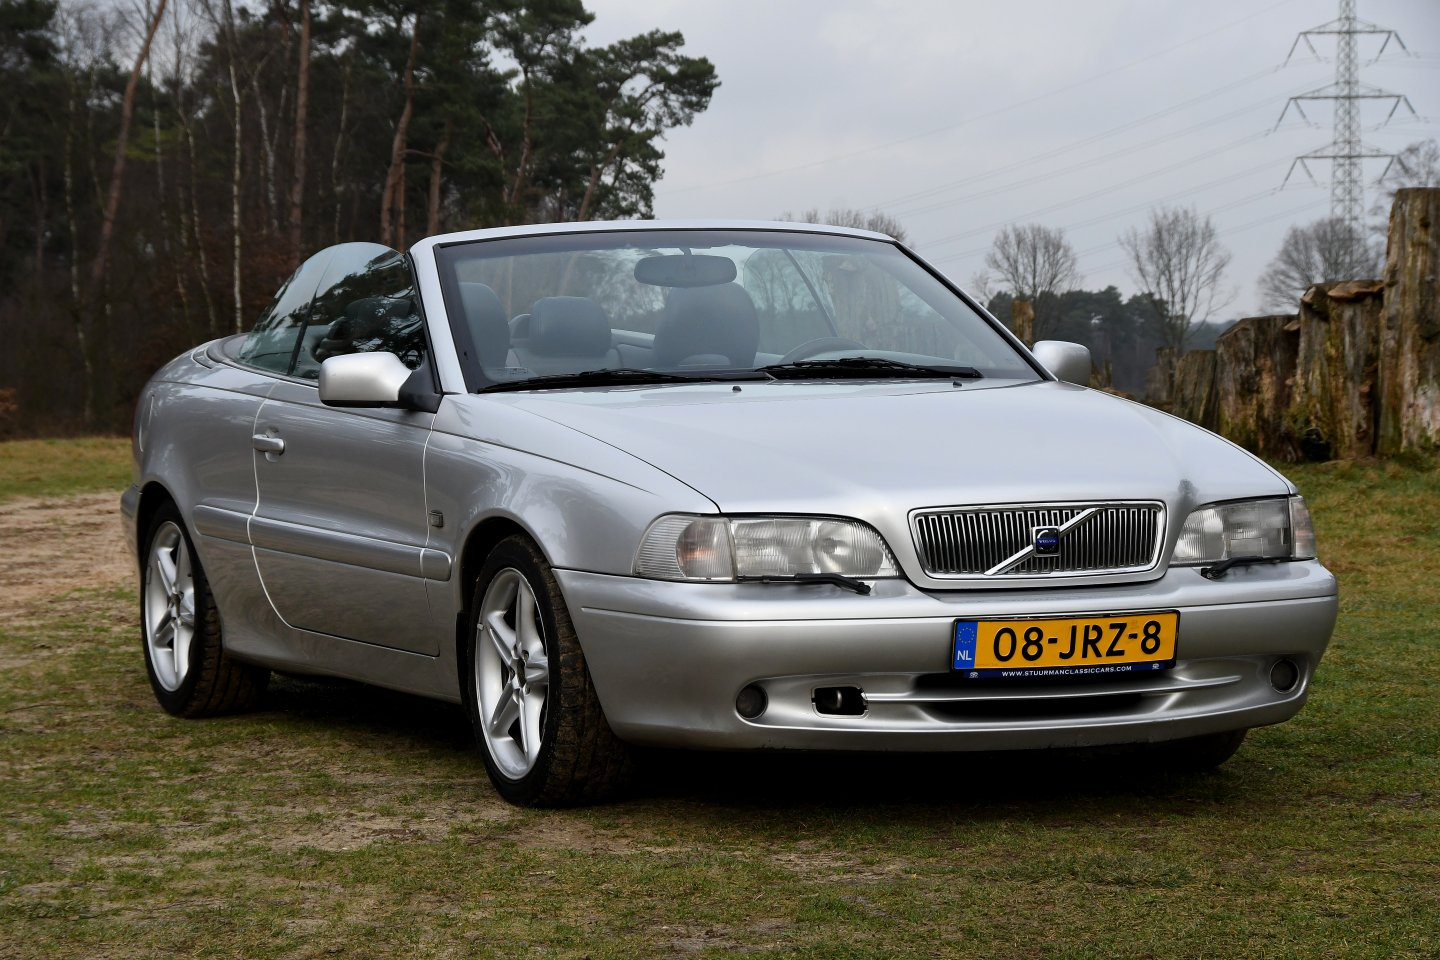 photos hd photo volvo images wallpaper convertibles clubs and background title